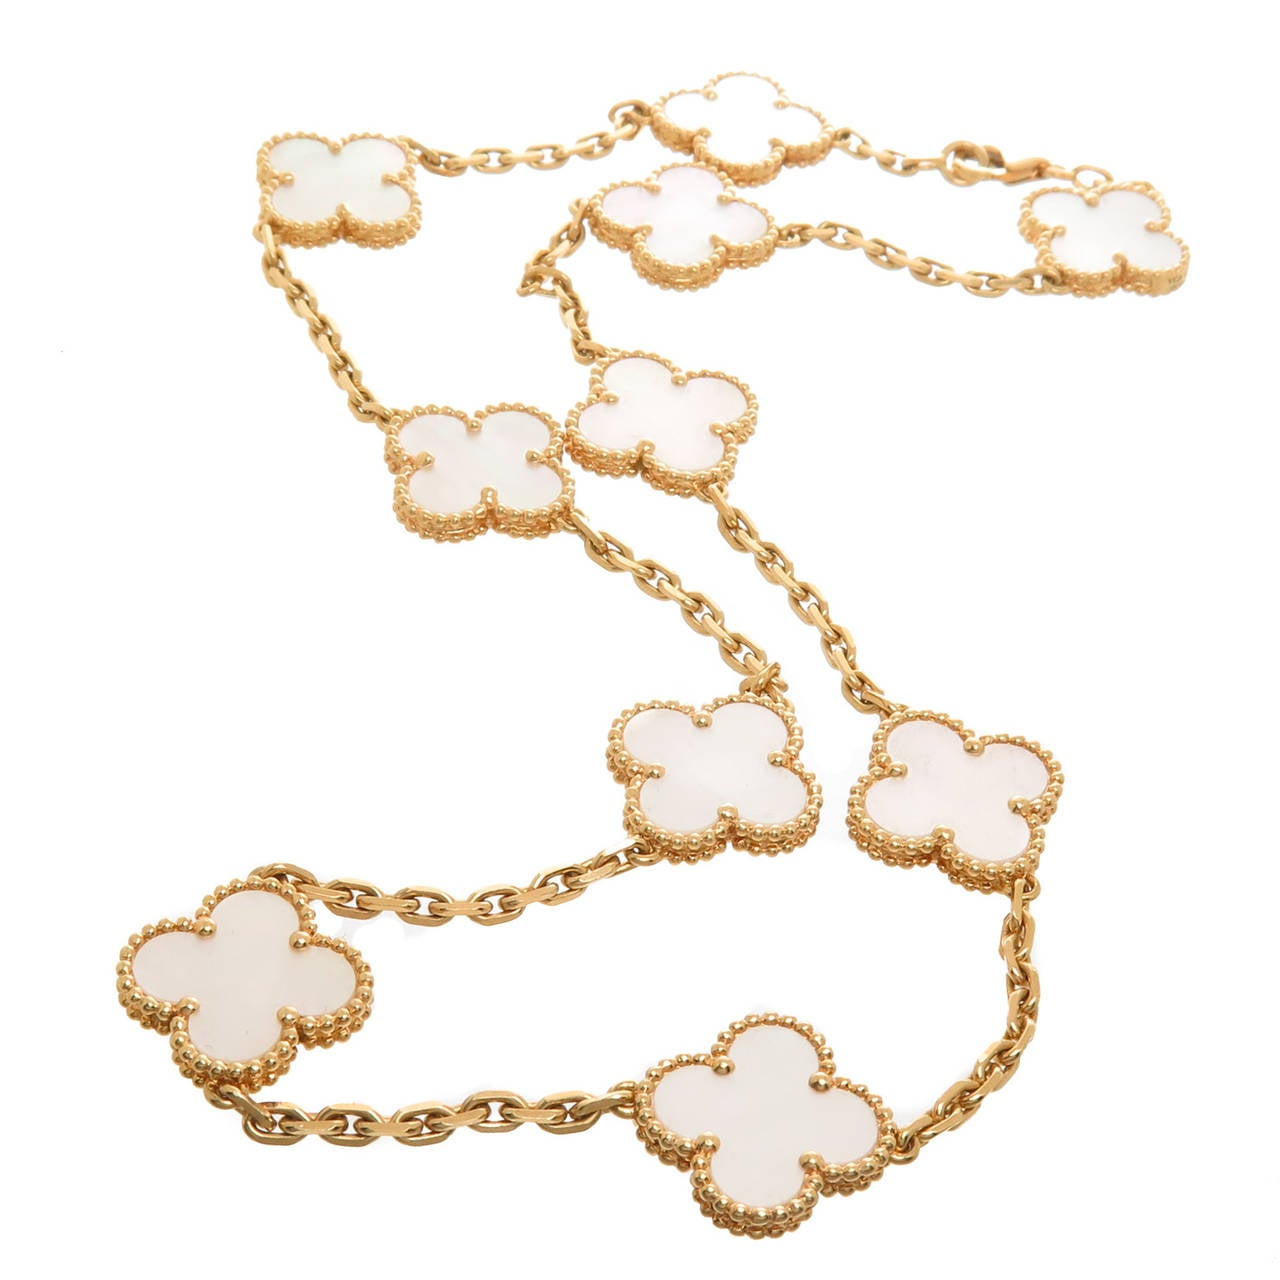 Van Cleef And Arpels Mother Of Pearl Necklace: Van Cleef And Arpels Alhambra Ten Motif Mother Of Pearl